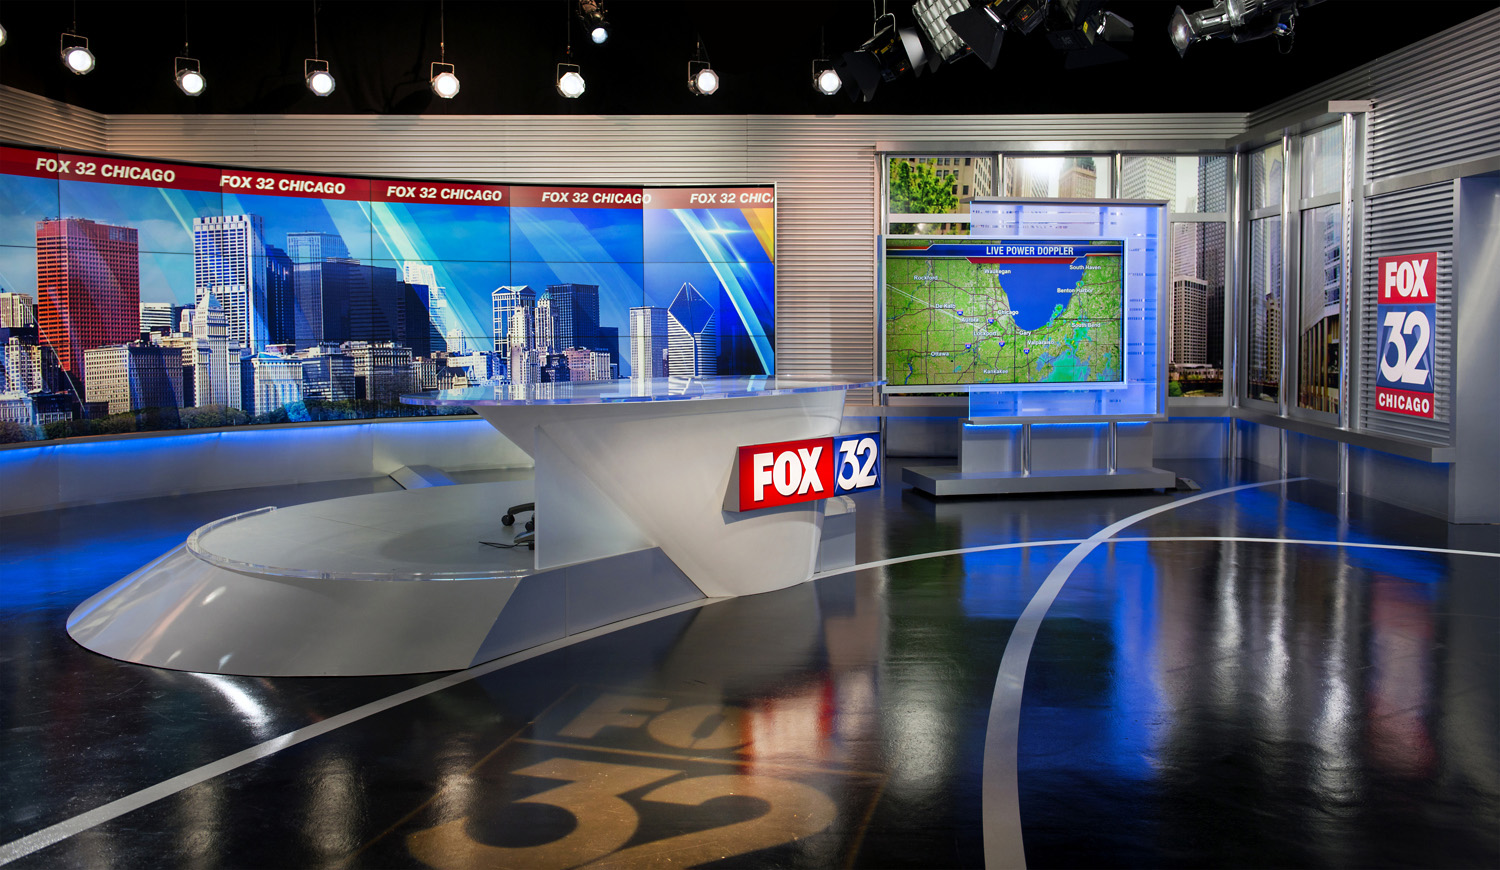 ncs_fox-chicago-wfld-tv-studio_0004